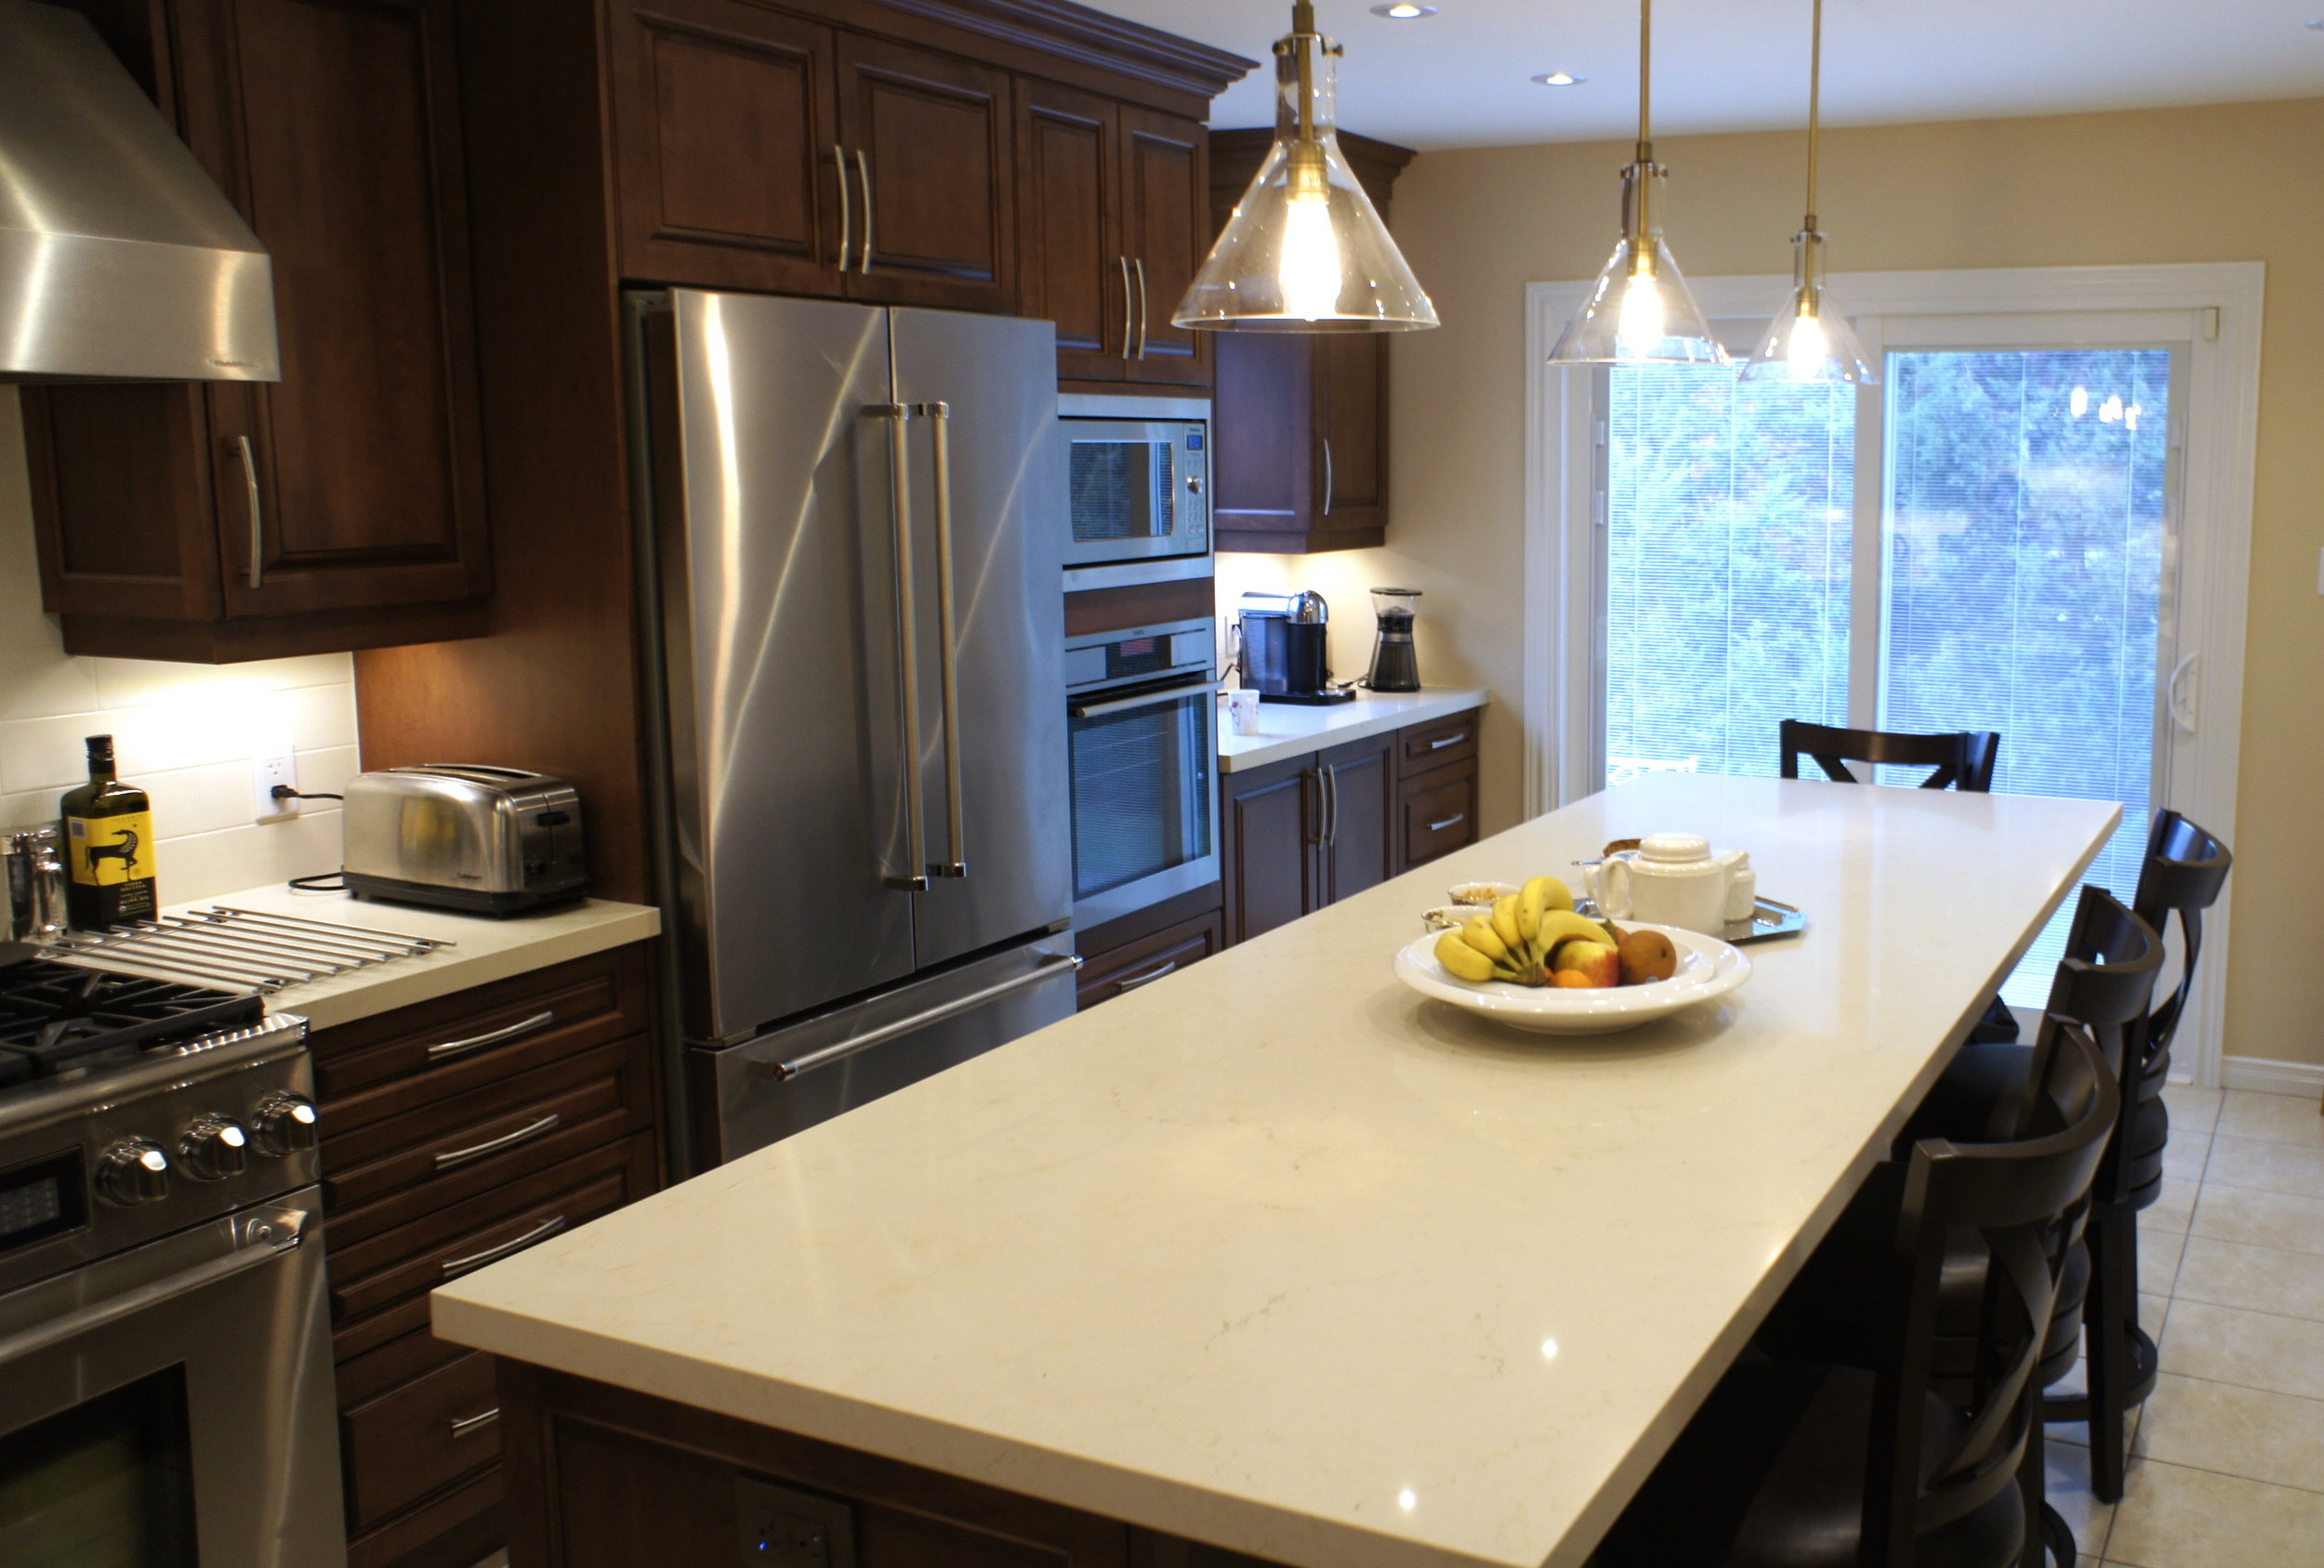 Spacious traditional kitchen island - Copy.jpg